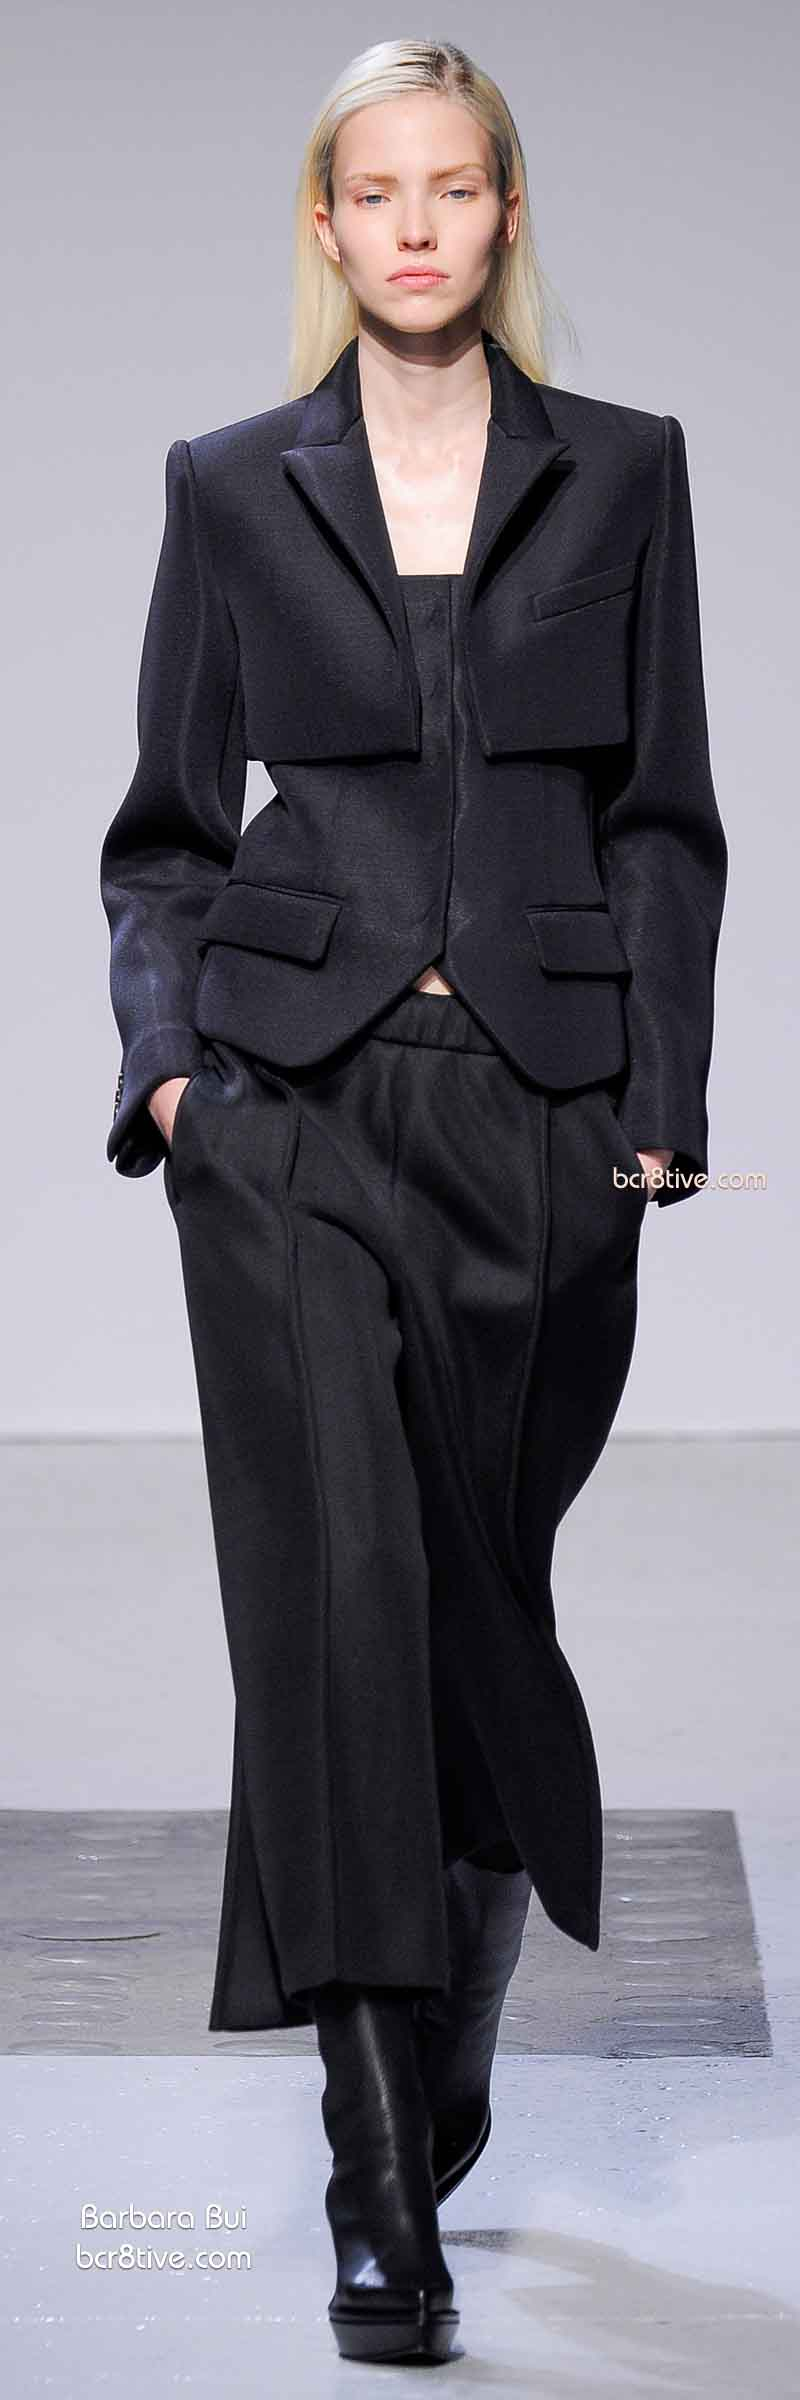 Fall 2014 Menswear Inspired Fashion - Barbara Bui